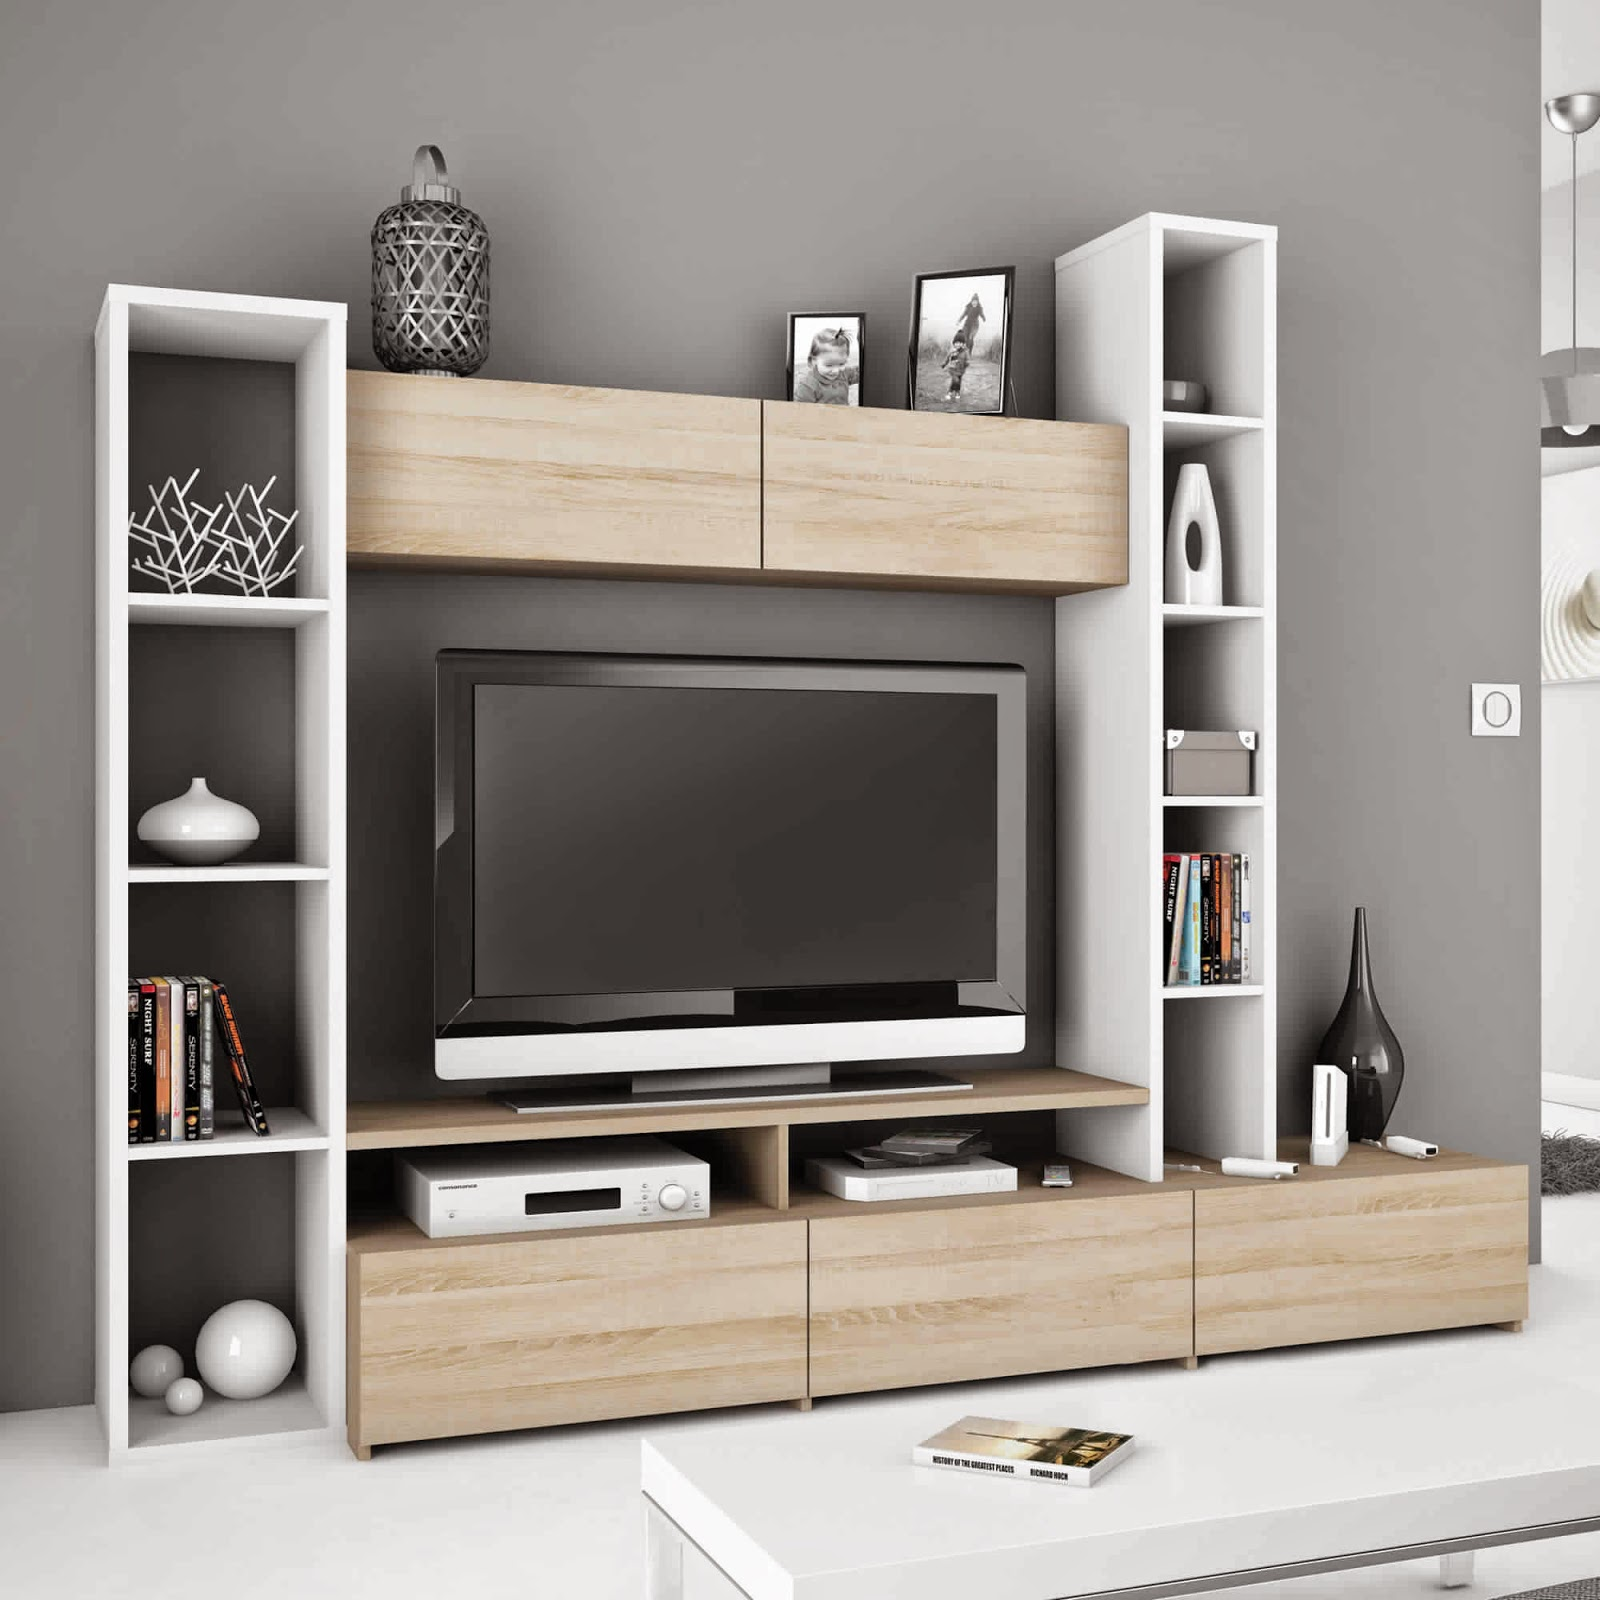 meuble tv rangement pas cher id es de d coration int rieure french decor. Black Bedroom Furniture Sets. Home Design Ideas